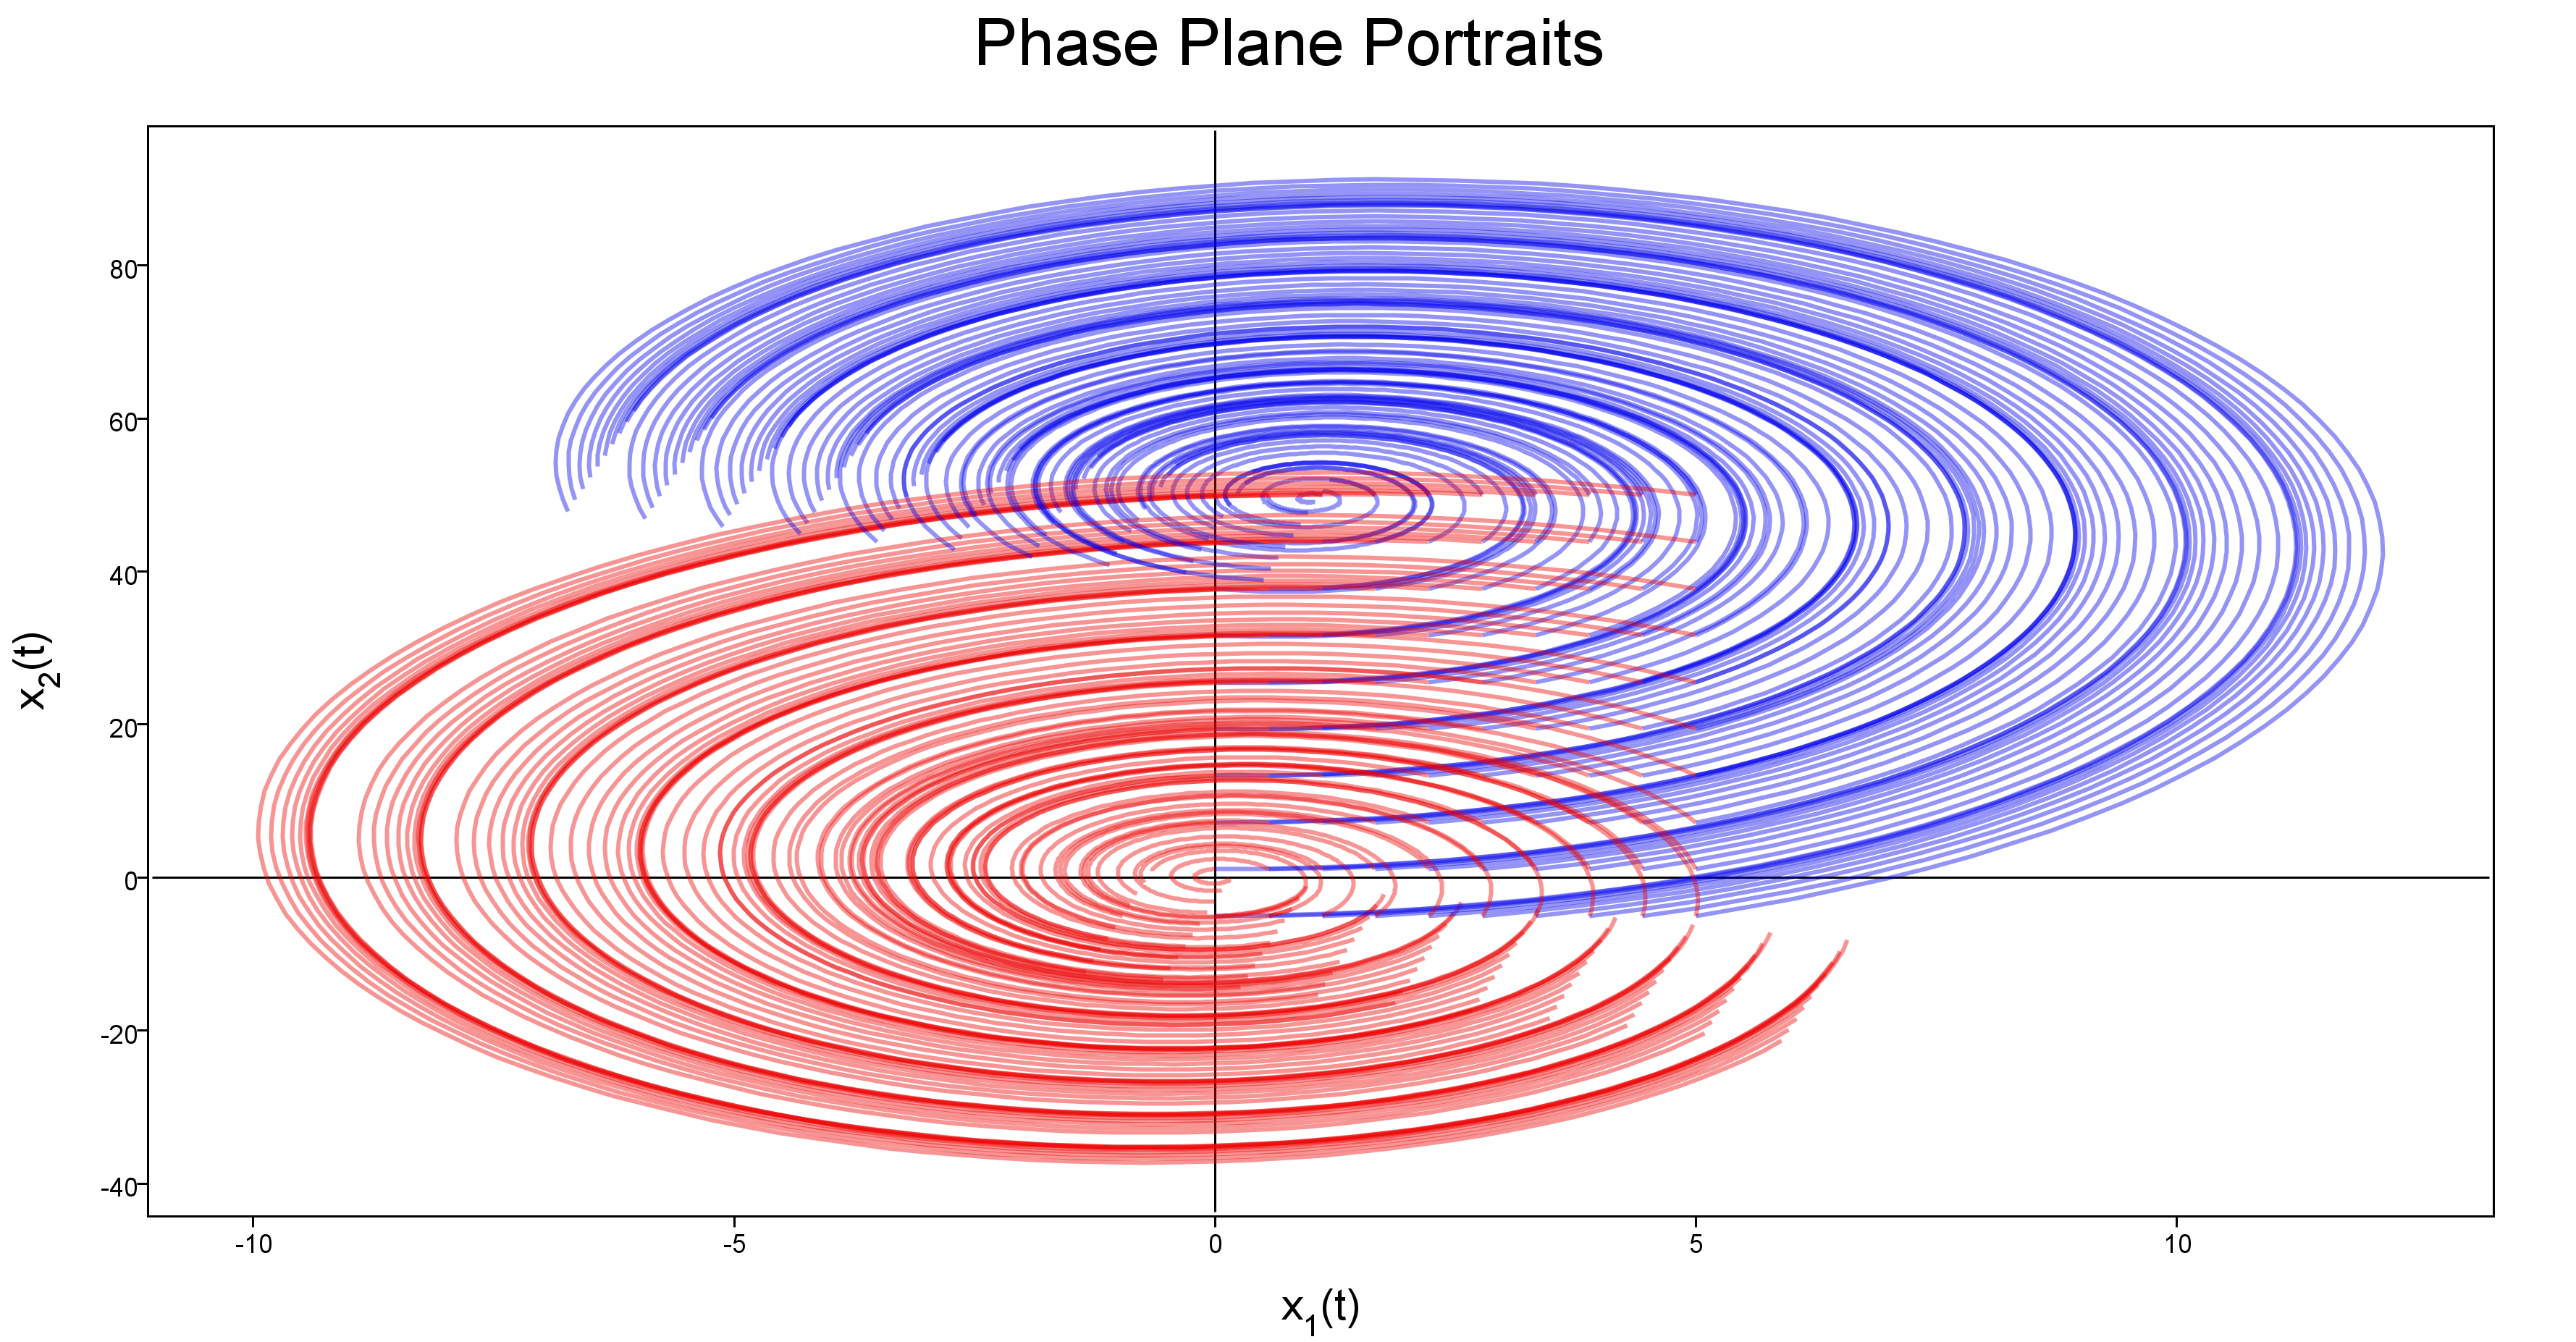 What is the coolest and up-to-date way to plot line charts